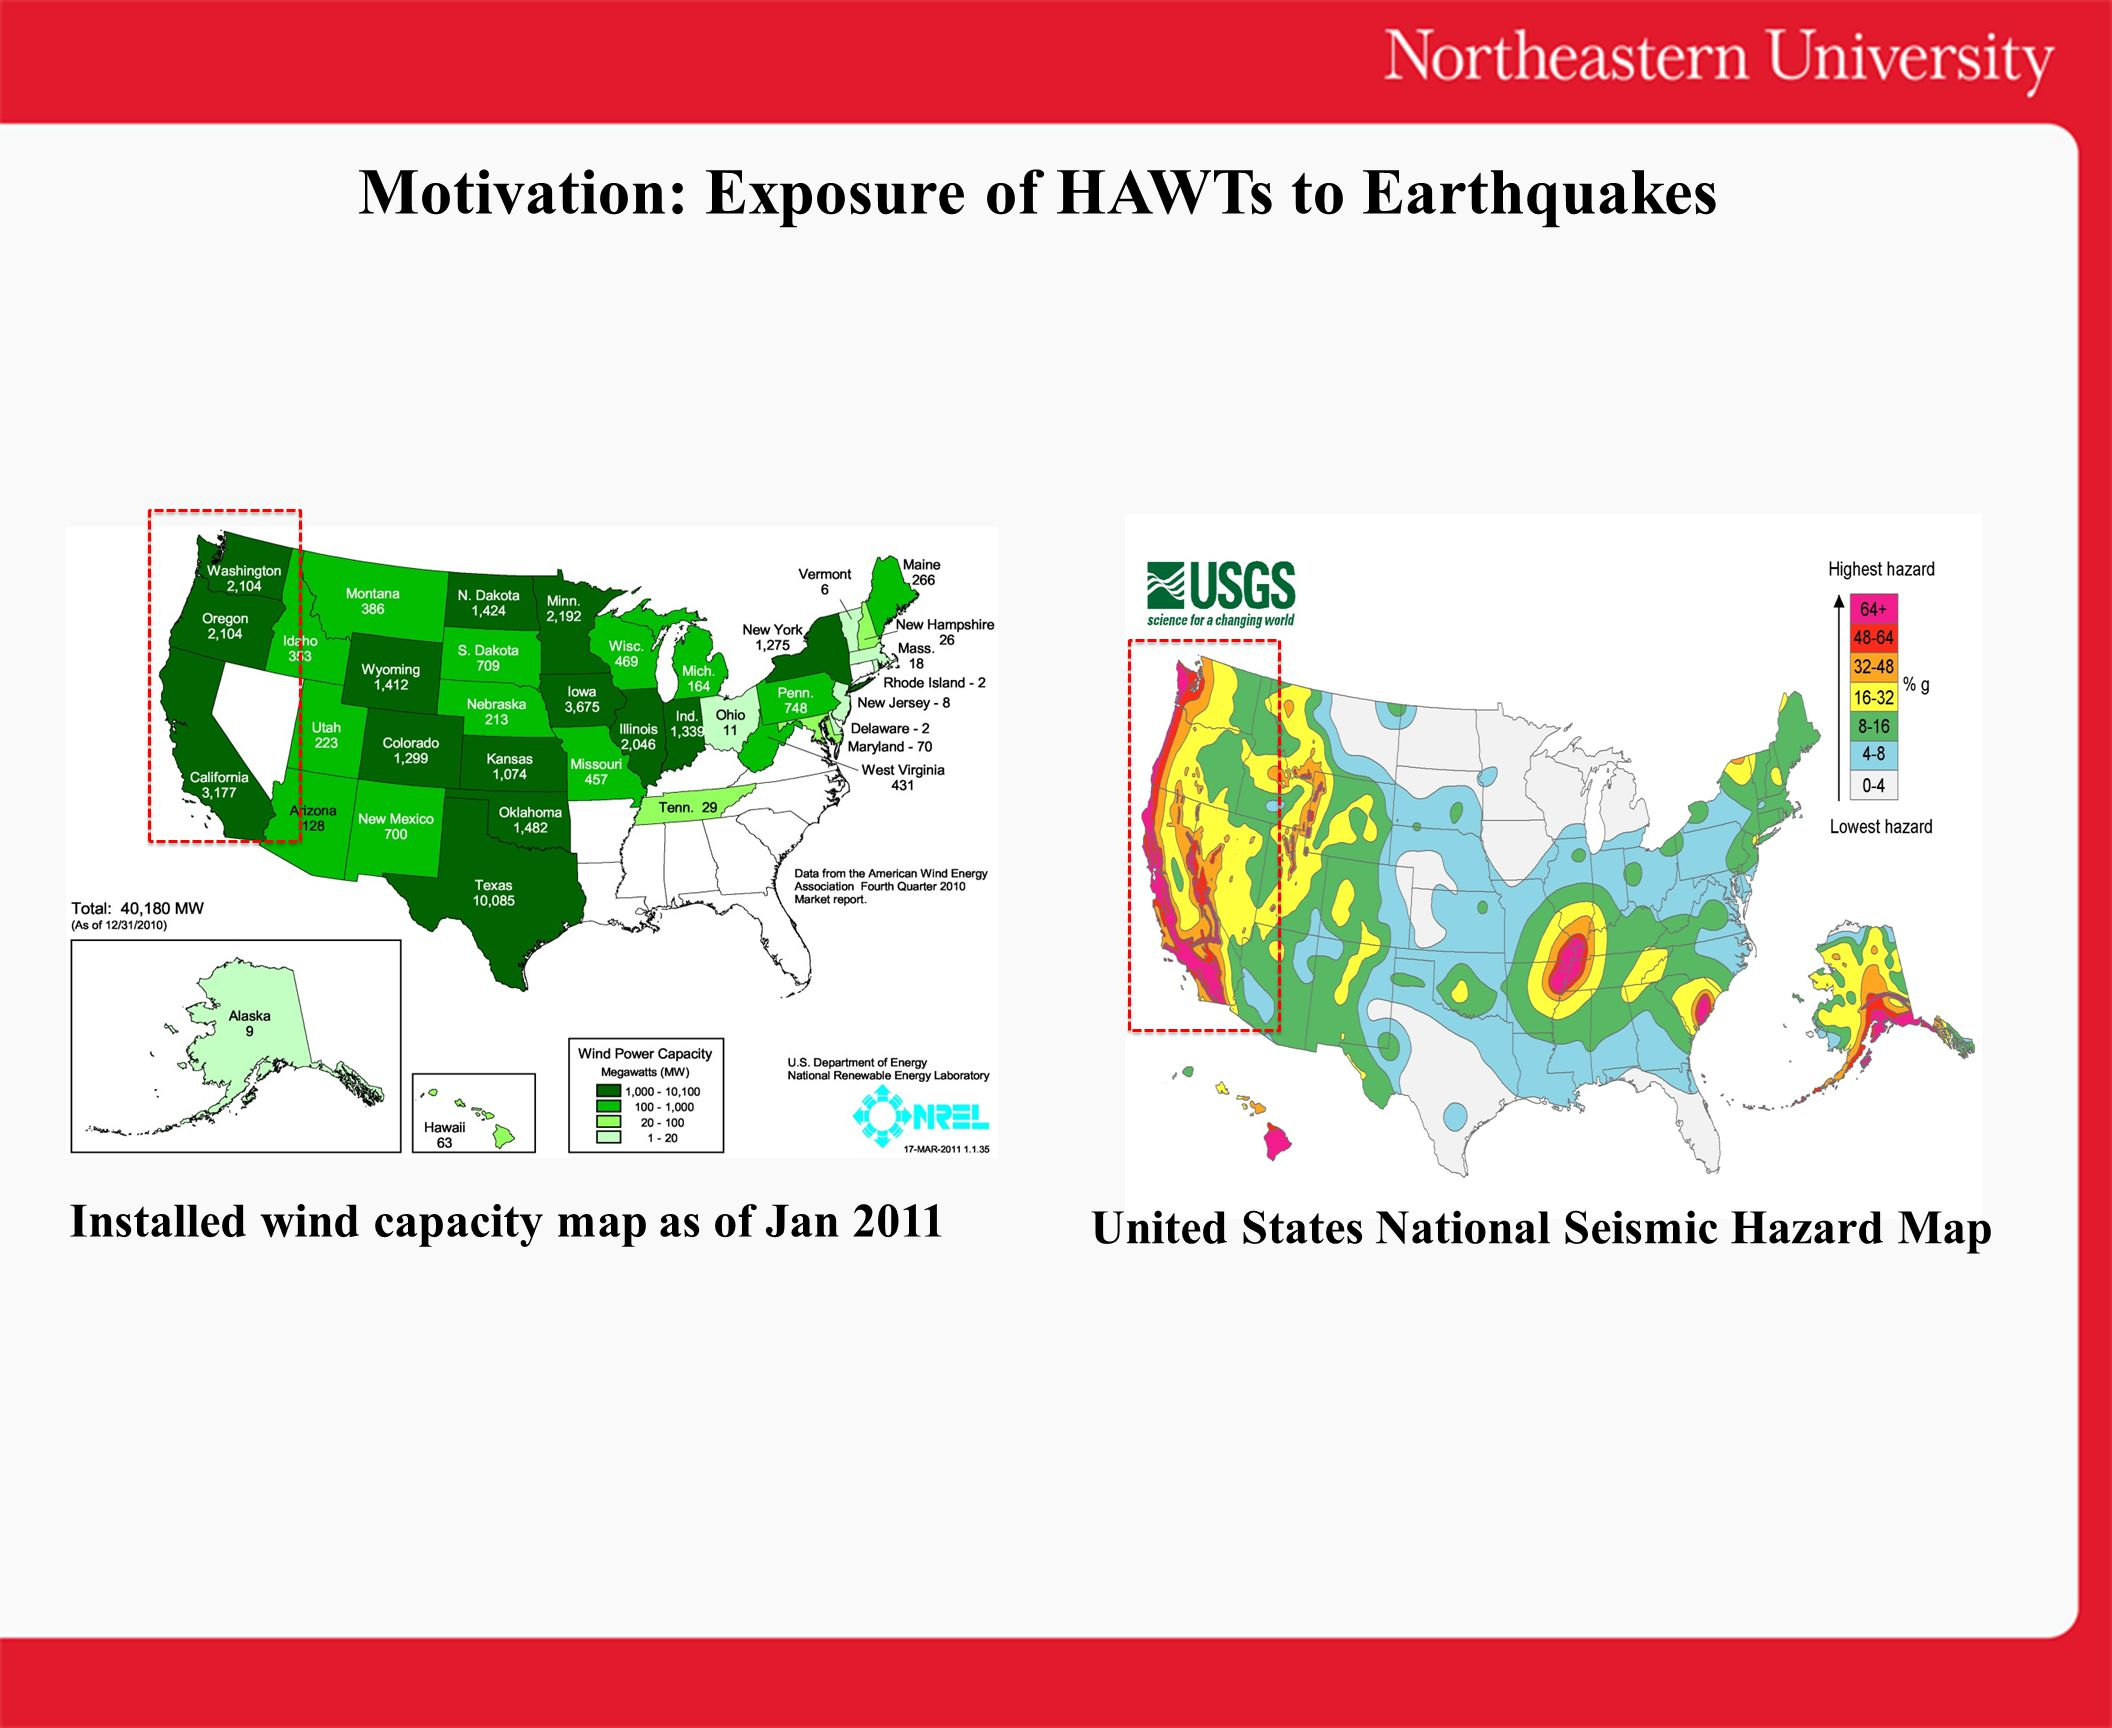 Motivation: Exposure of HAWTs to Earthquakes